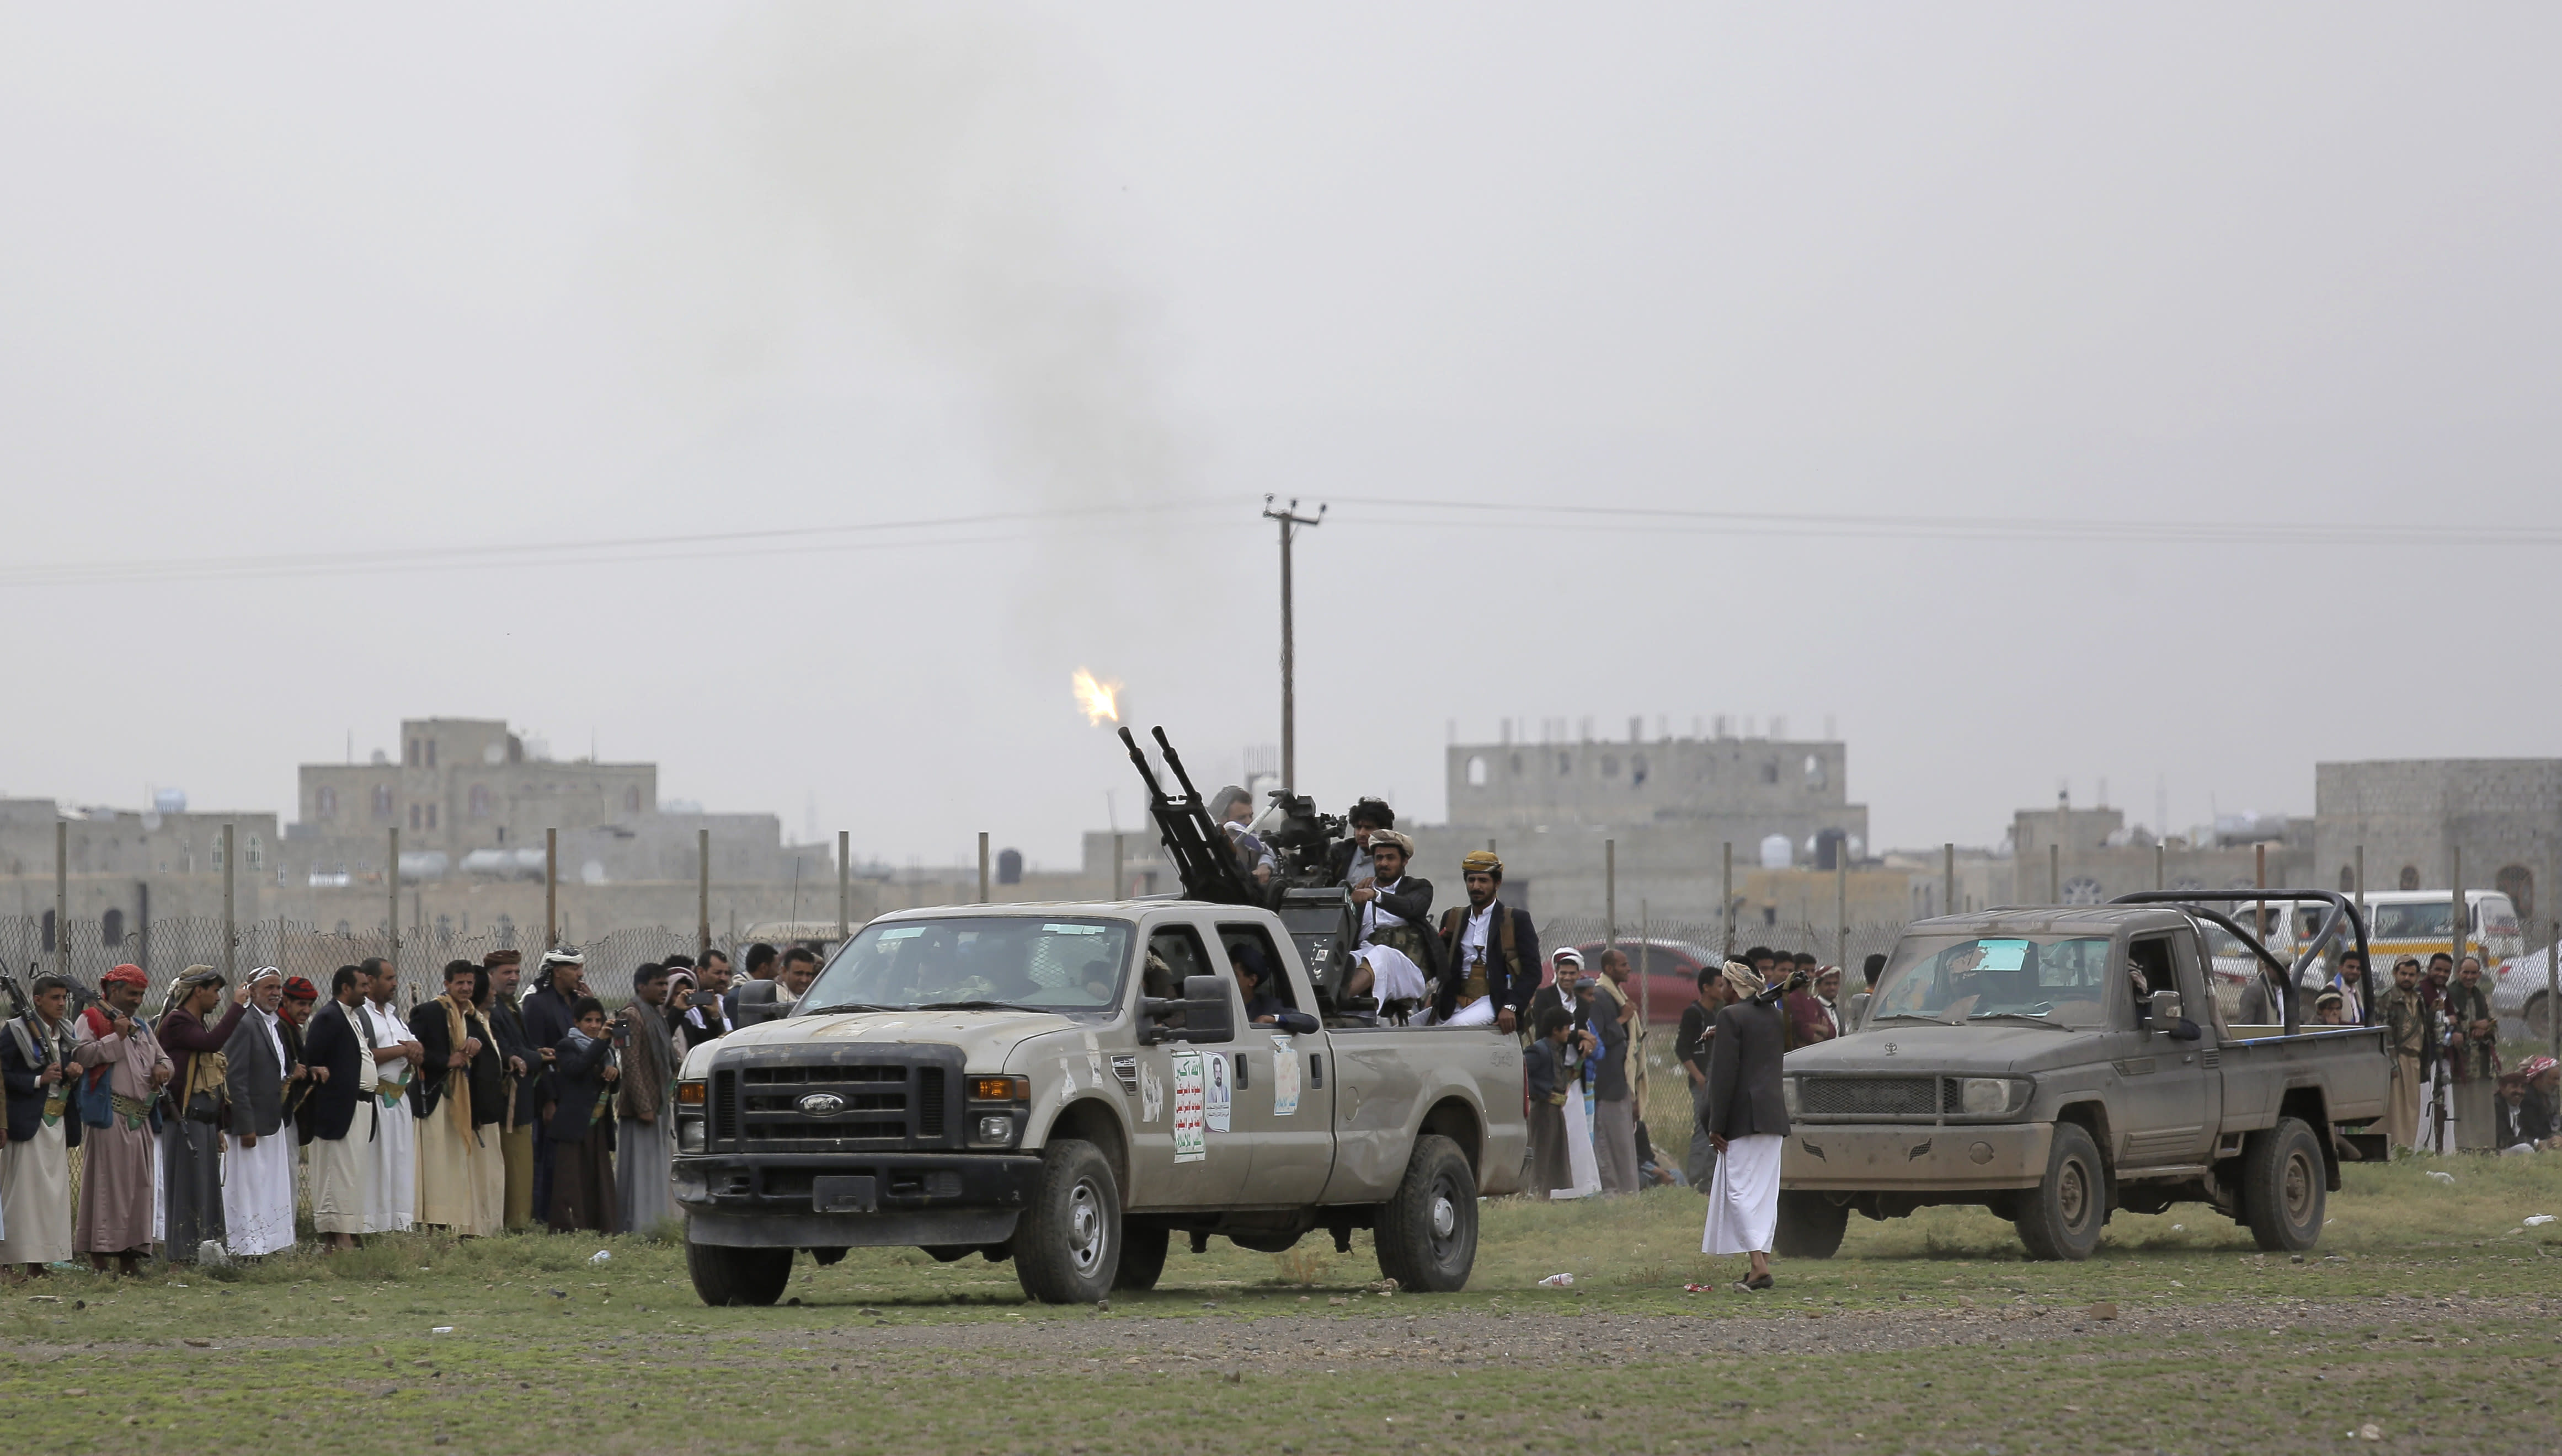 Houthi rebel fighters fire their weapons in the air as they take off to a battlefront following a gathering aimed at mobilizing more fighters for the Houthi movement, in Sanaa, Yemen, Thursday, Aug. 1, 2019. The conflict in Yemen began with the 2014 takeover of Sanaa by the Houthis, who drove out the internationally recognized government. Months later, in March 2015, a Saudi-led coalition launched its air campaign to prevent the rebels from overrunning the country's south. (AP Photo/Hani Mohammed)